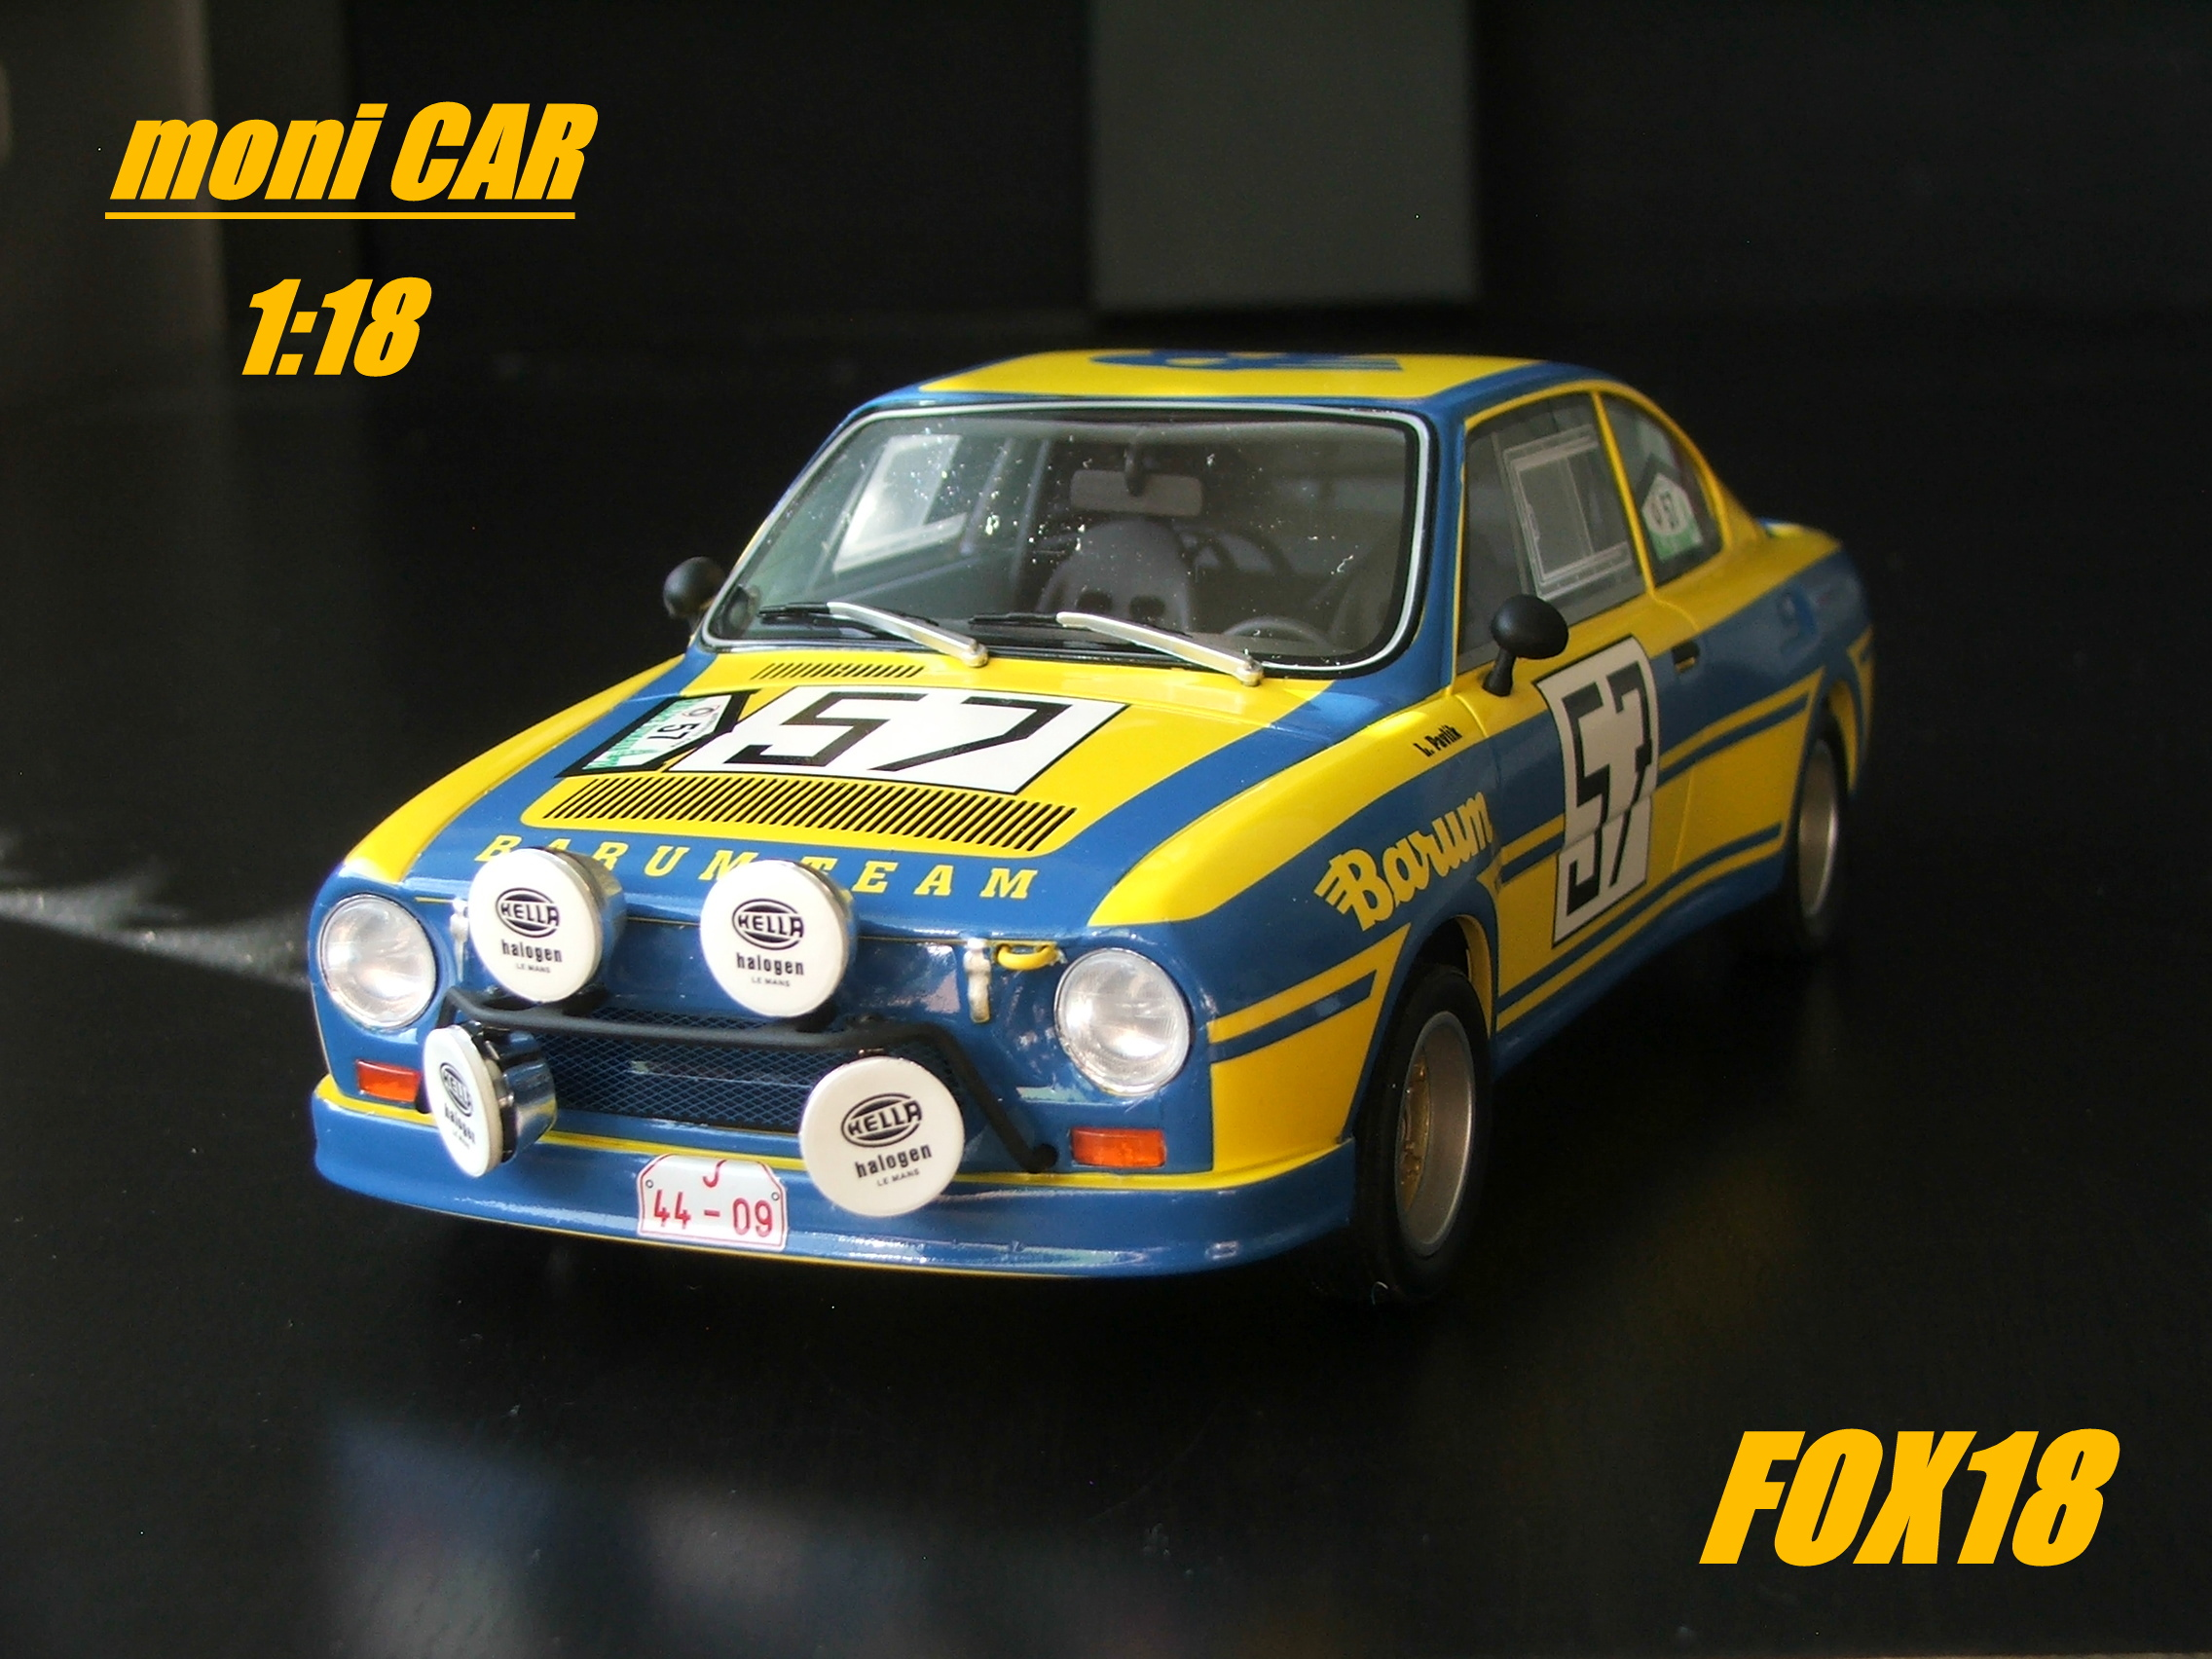 Škoda 130 RS n. 57 Barum Rally Šumava 1978  Pavlík L. - Gottfried O. Limited Edition (1:18) FOX18